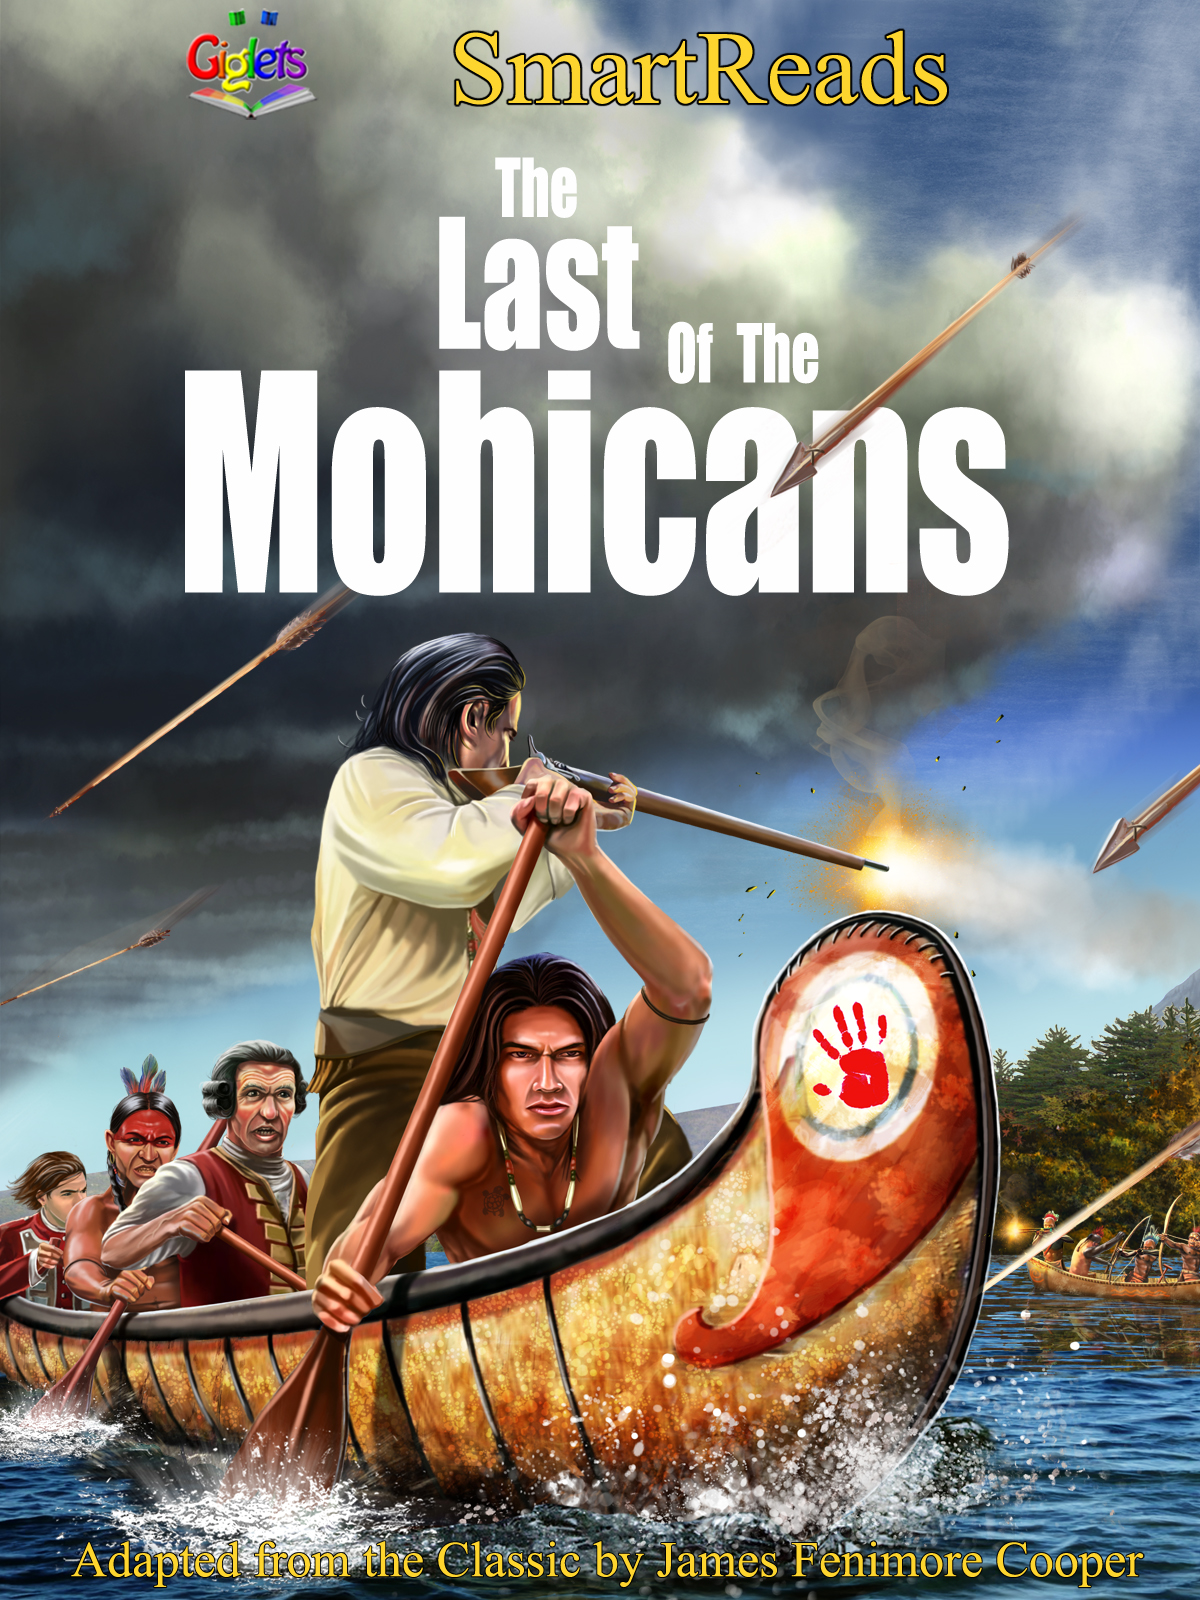 SmartReads The Last of the Mohicans